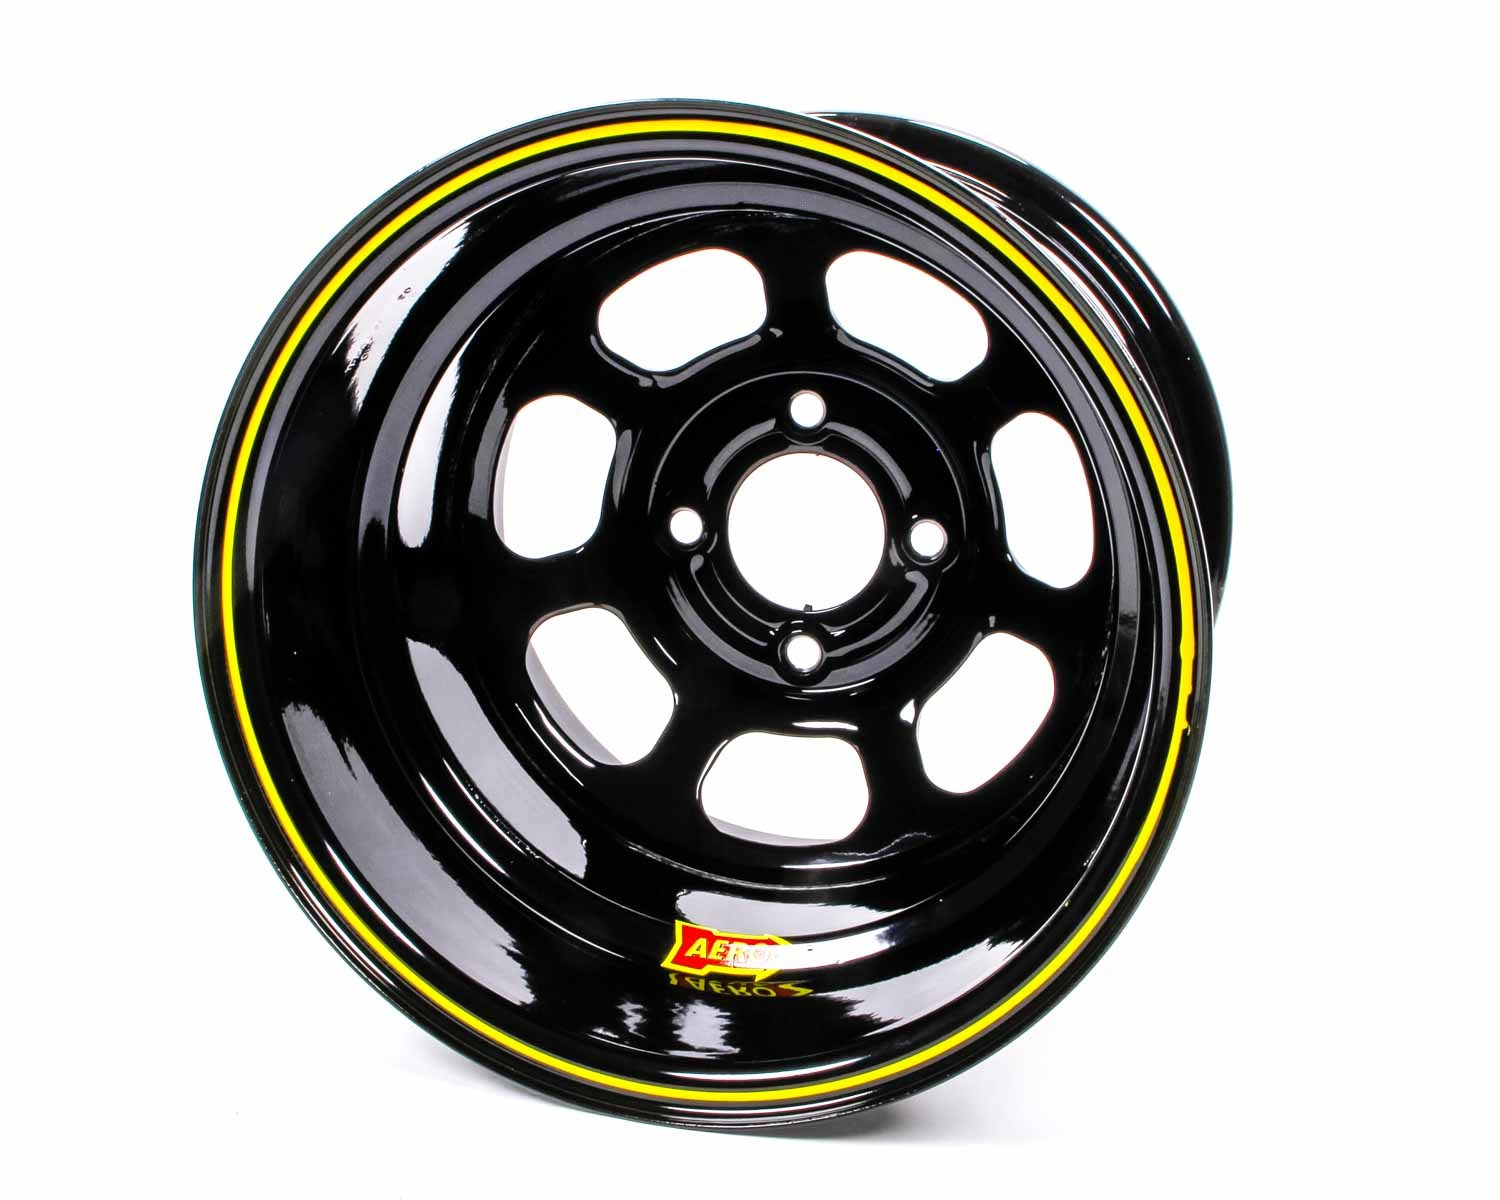 Aero Race 13x7 3in. 4.25 Black  Wheel